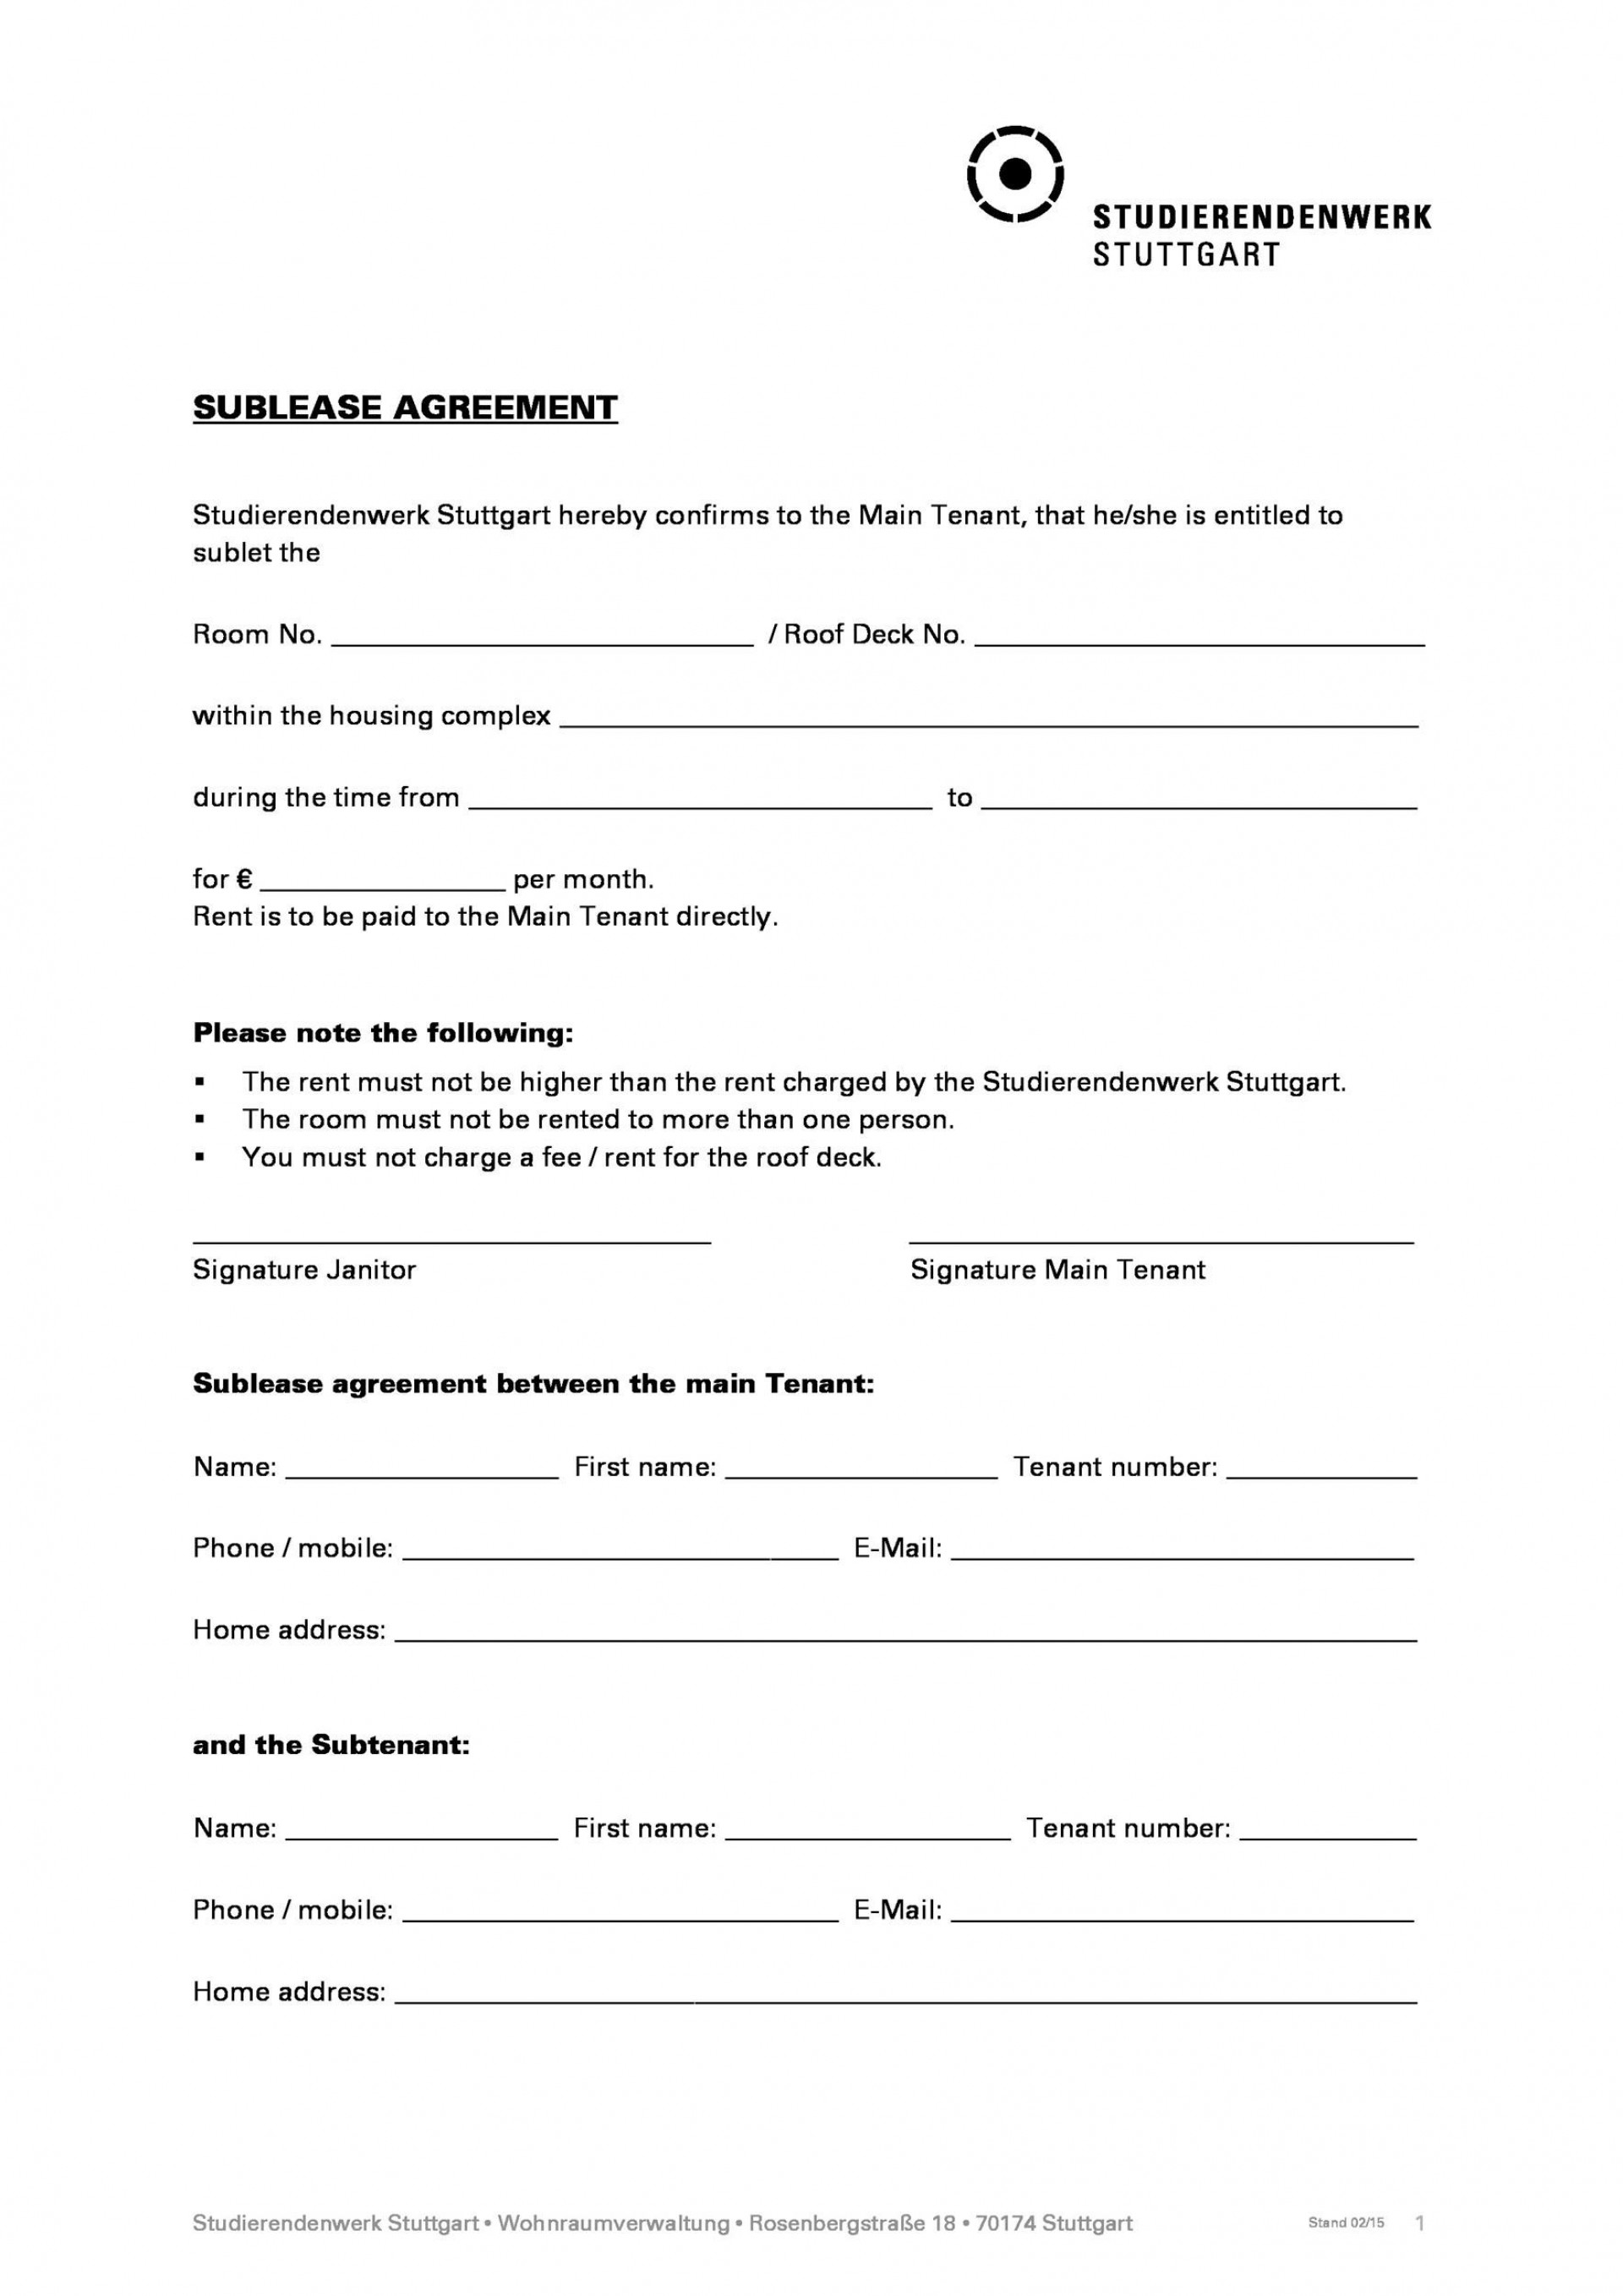 004 Astounding Free Sublease Agreement Template Pdf Inspiration  Room Rental Car Form Residential Lease1920